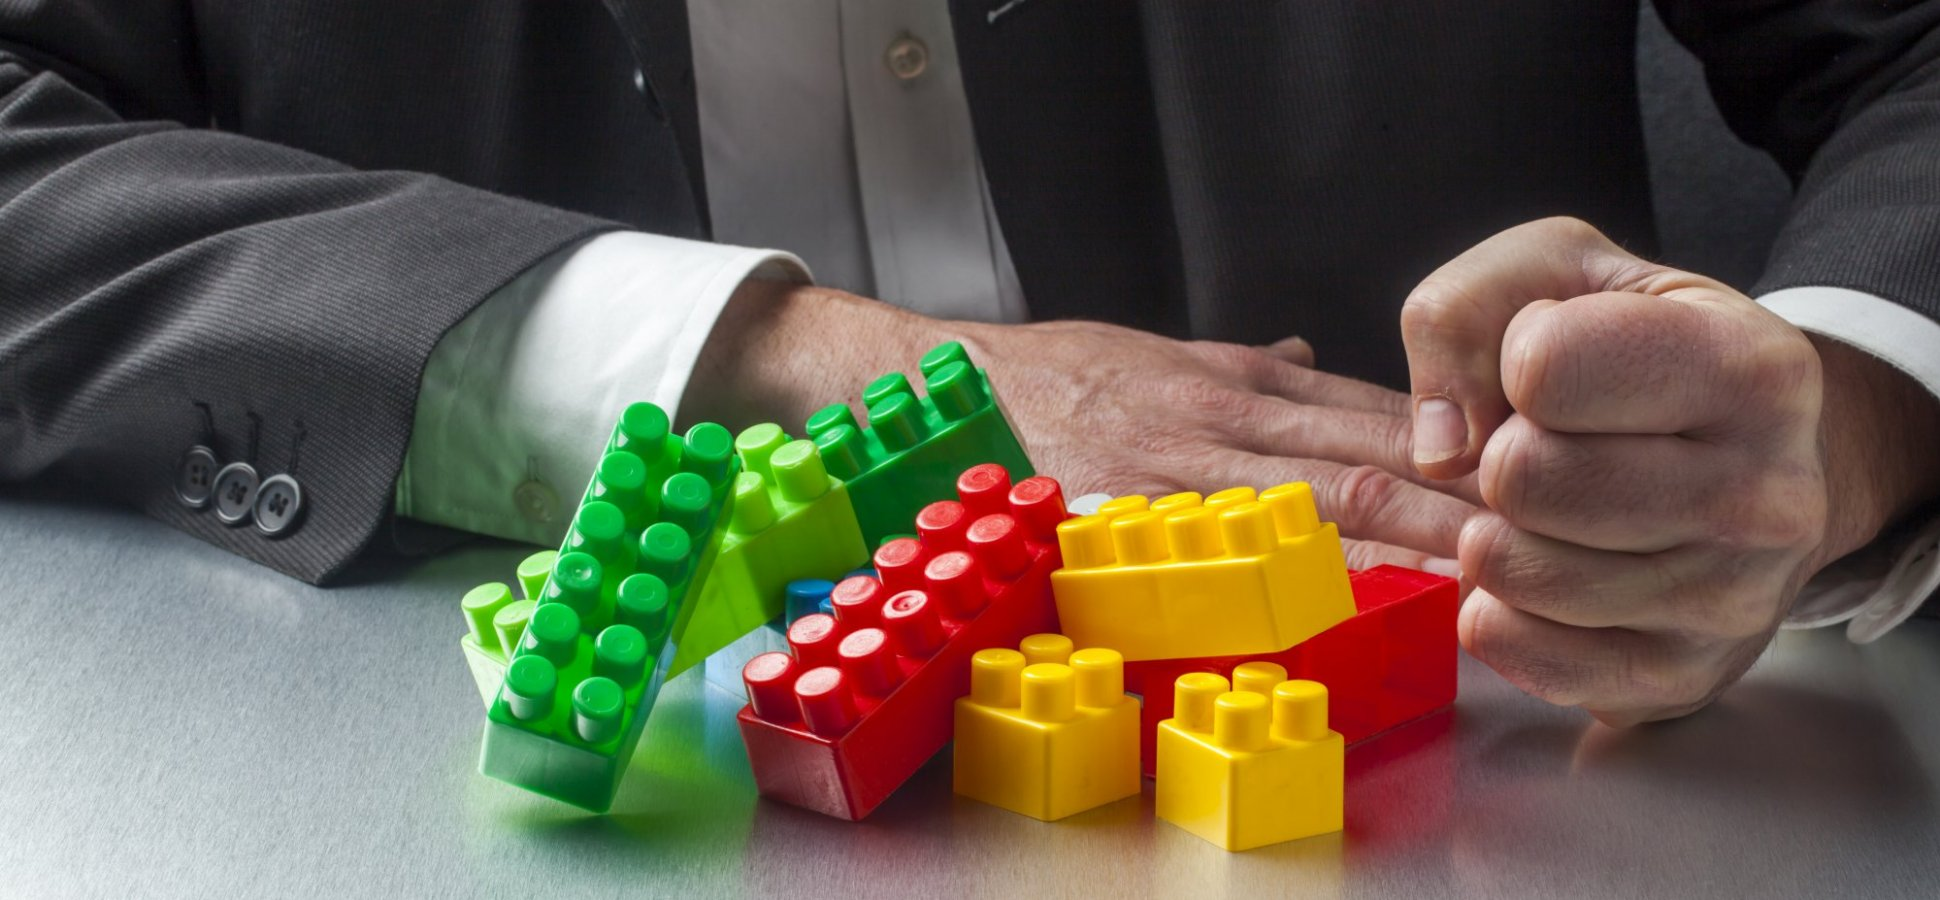 Want to Make Better Leaders? Give Them These 3 Kinds of LEGO Kits (Seriously)